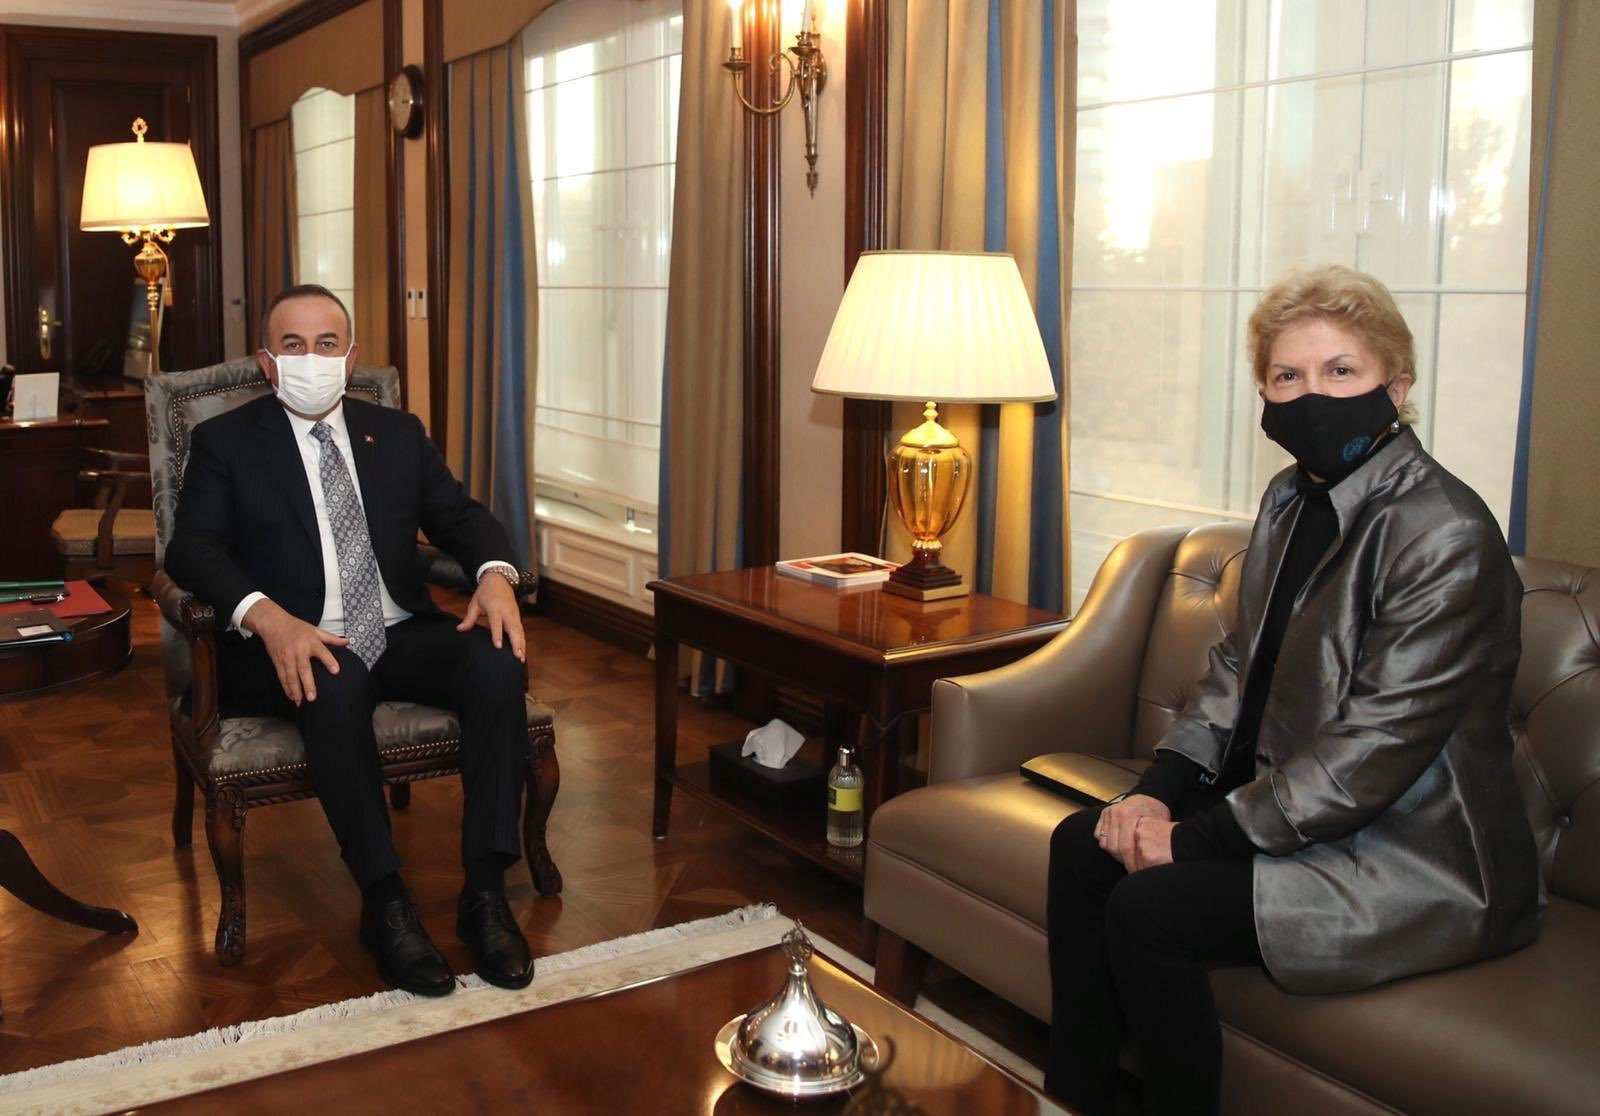 Foreign Minister Mevlüt Çavuşoğlu met with the United Nations special envoy to Cyprus, Jane Holl Lute, in Ankara, Dec. 16, 2020 (Courtesy of the Foreign Ministry)